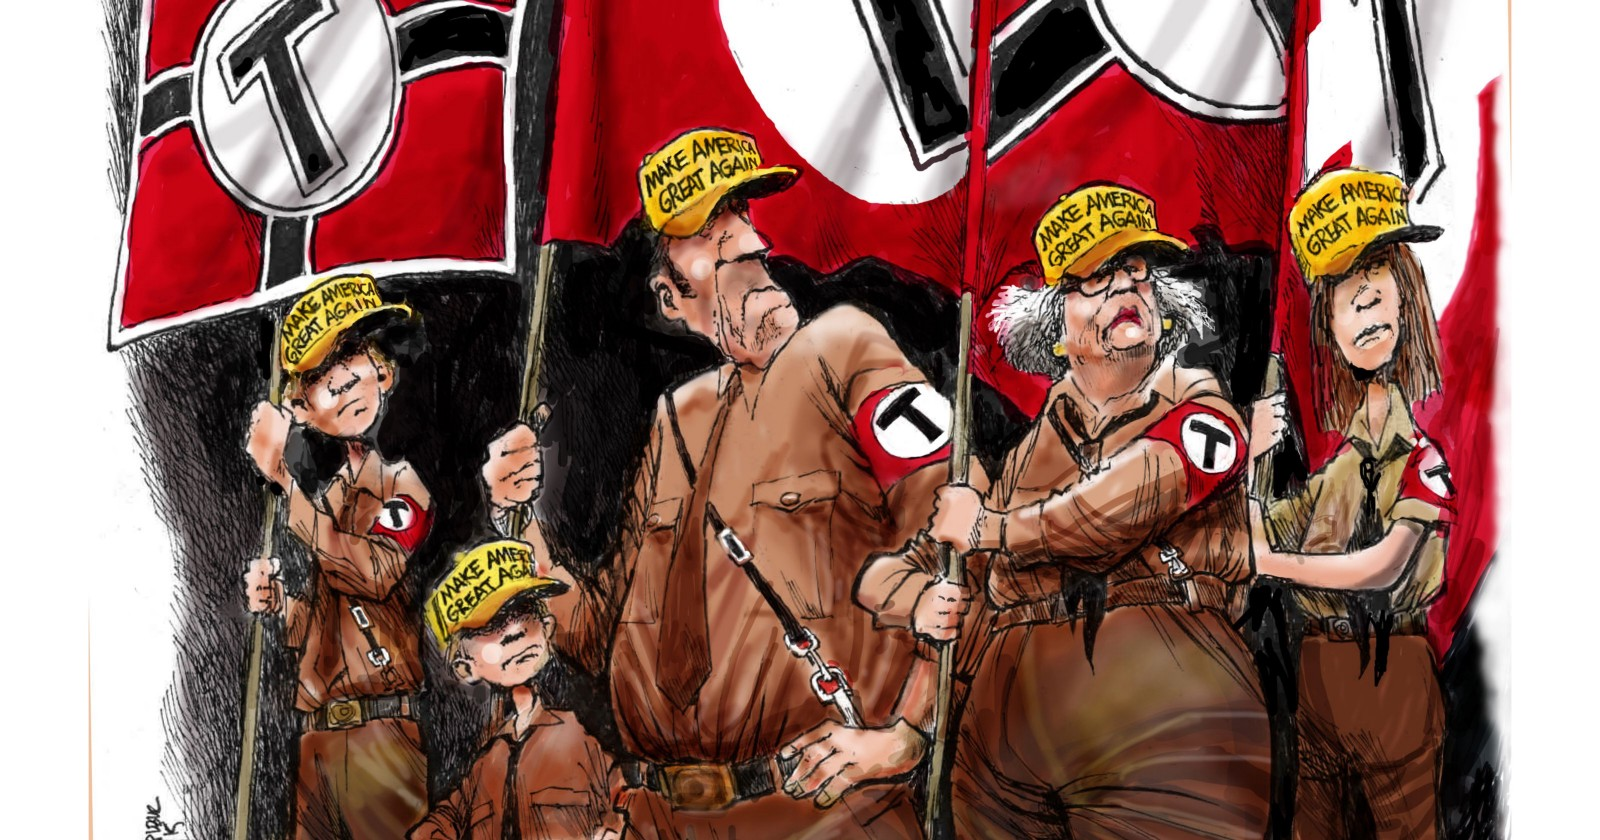 the nazi germany image for over 70 years but they will continue with that struggle for the foreseeable future we in the united states are about to join